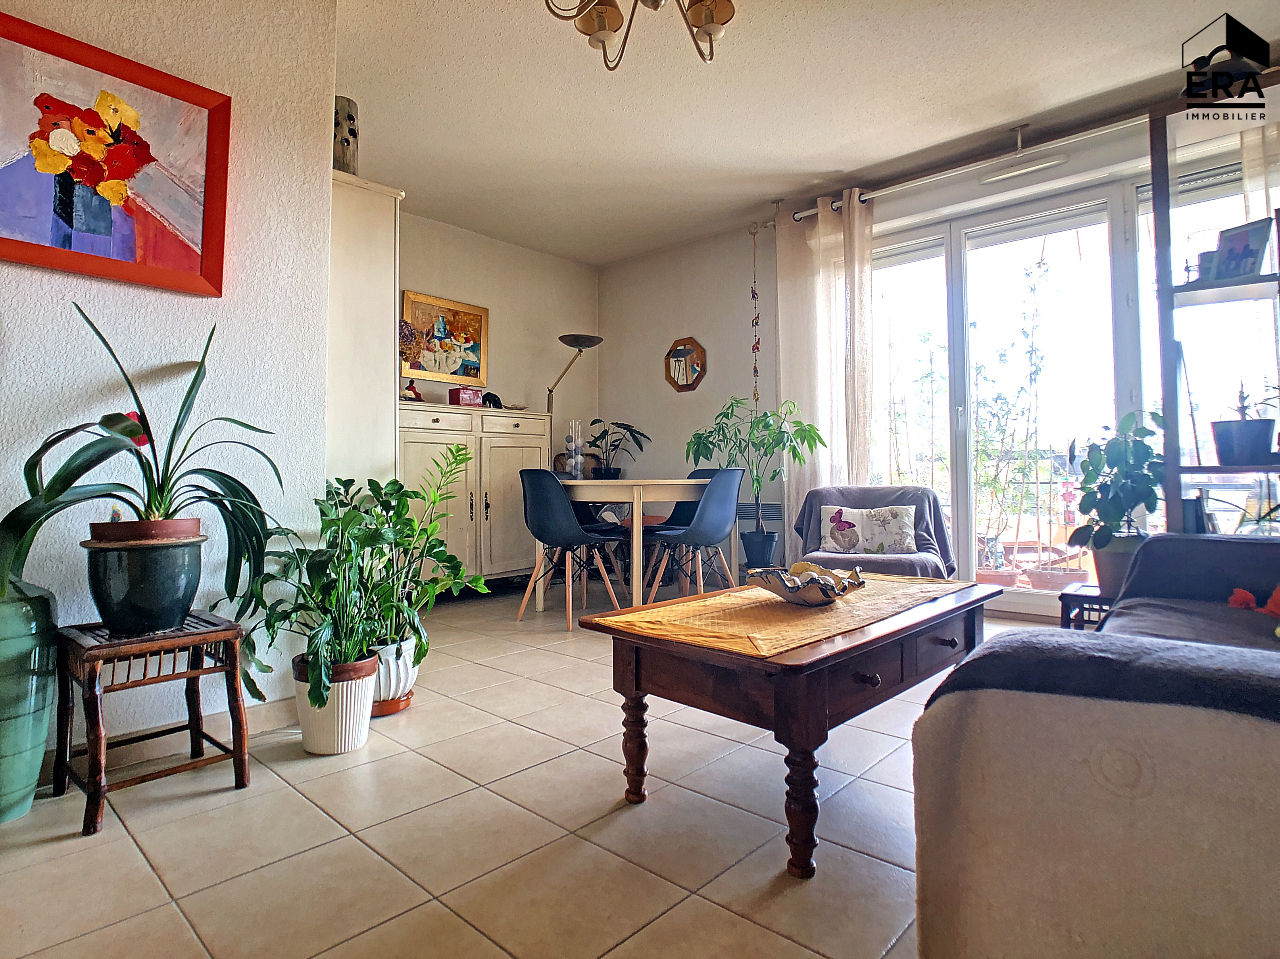 A VENDRE MARSEILLE ST MARTHE 13014 APPARTEMENT RECENT T3 TERRASSE GARAGE PARKING